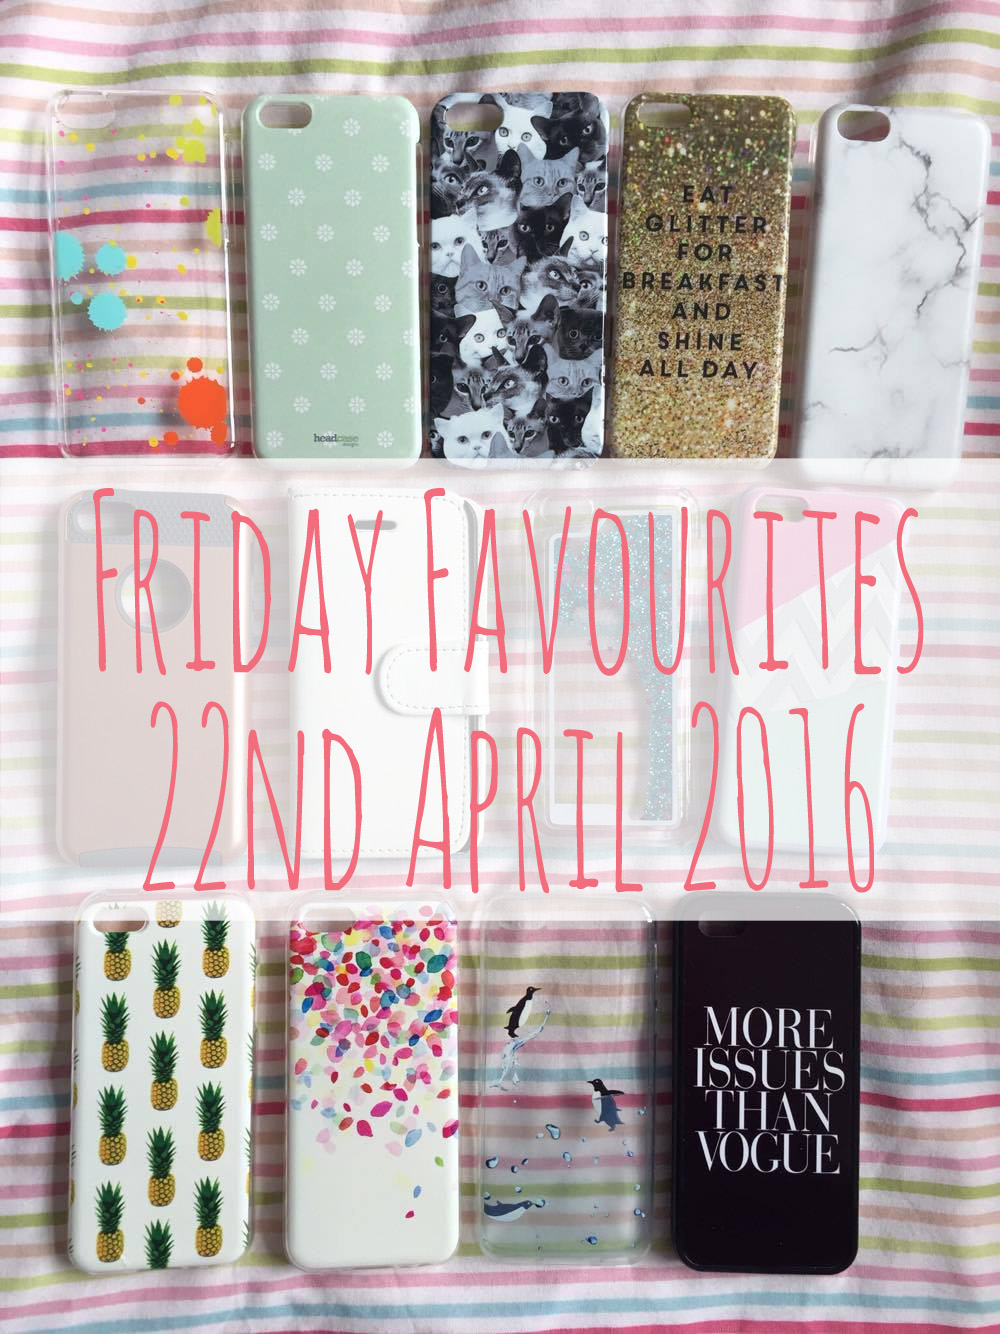 Friday Favourites 22nd April 2016.